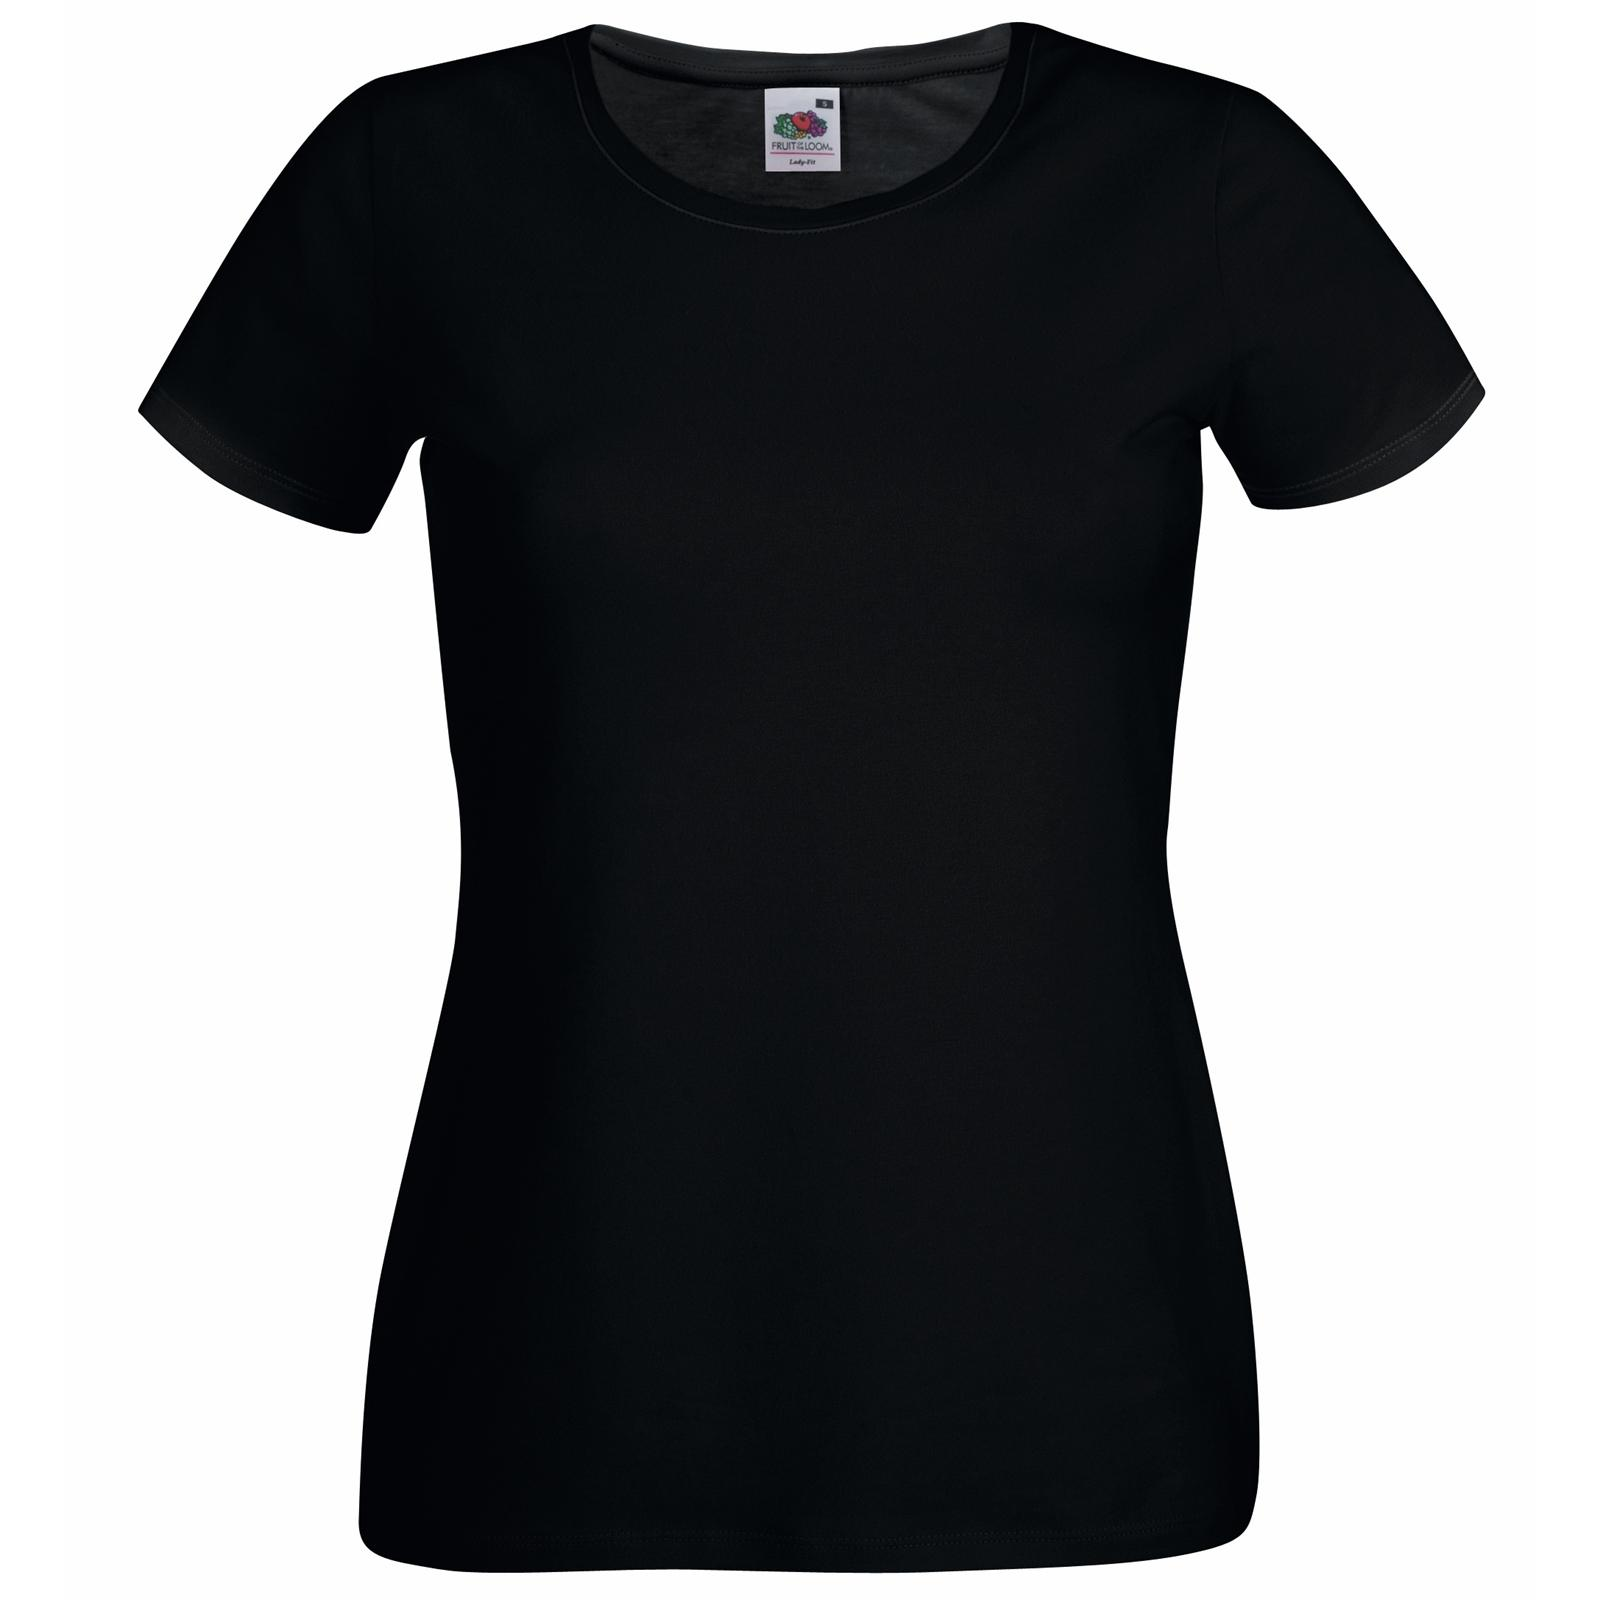 New Fruit Of The Loom Womens Lady Fit Crew Neck T Shirt 7: womens black tee shirt